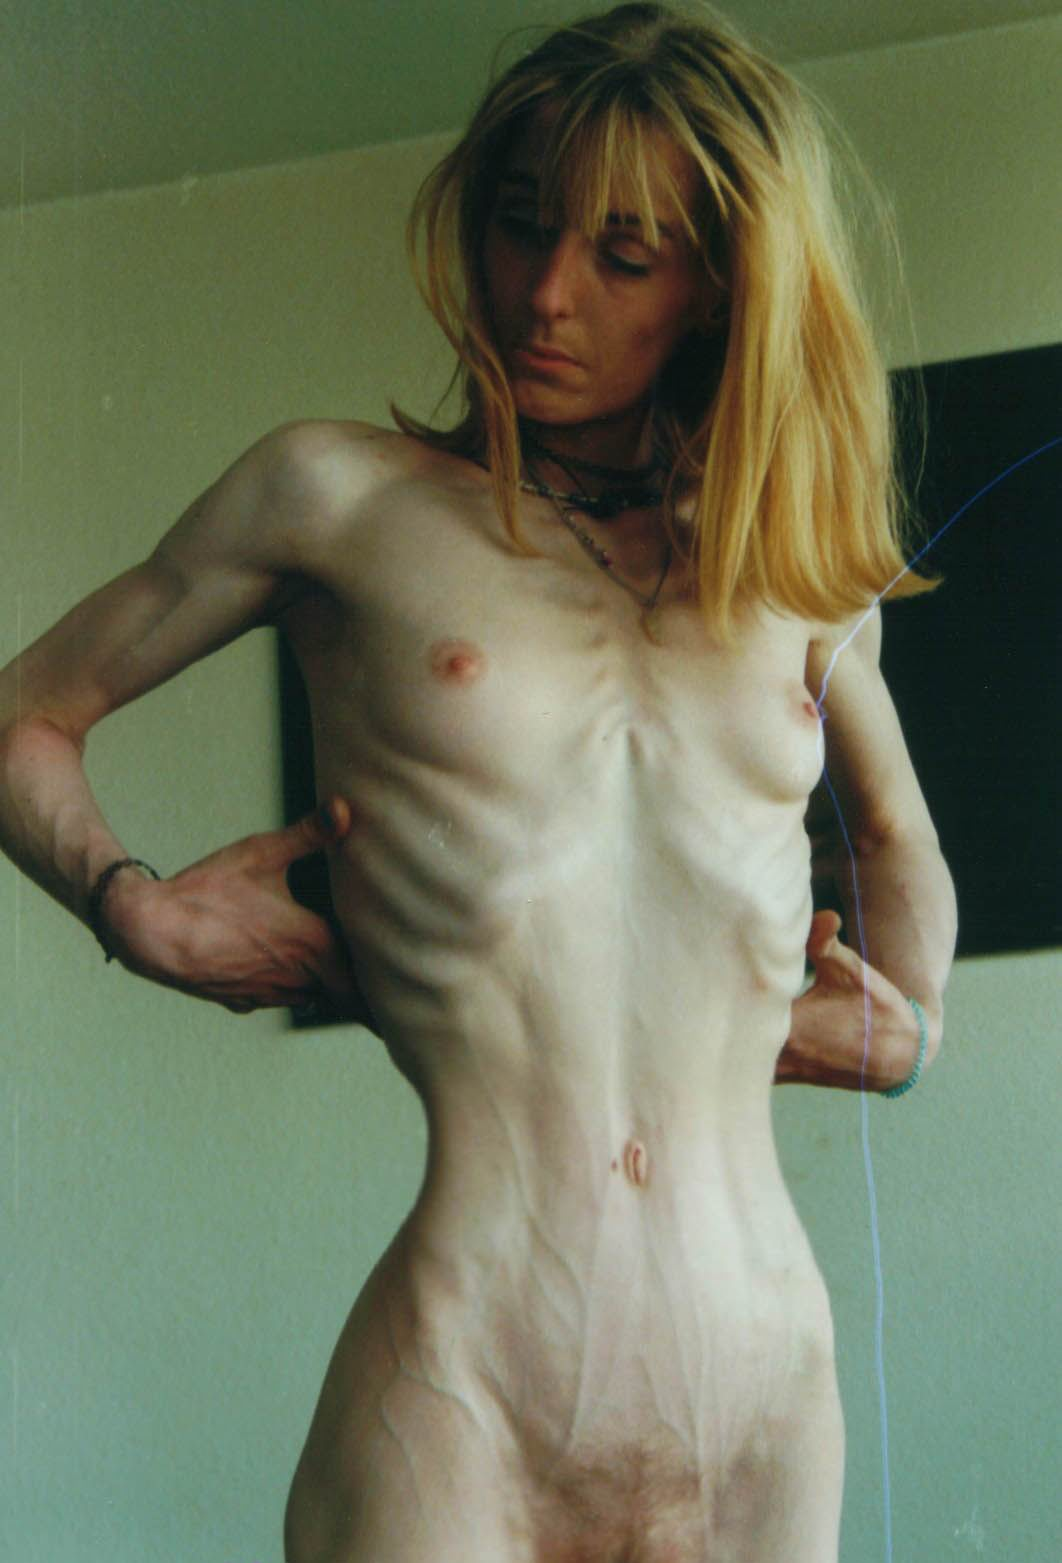 from Robert pictures of naked anorexic women